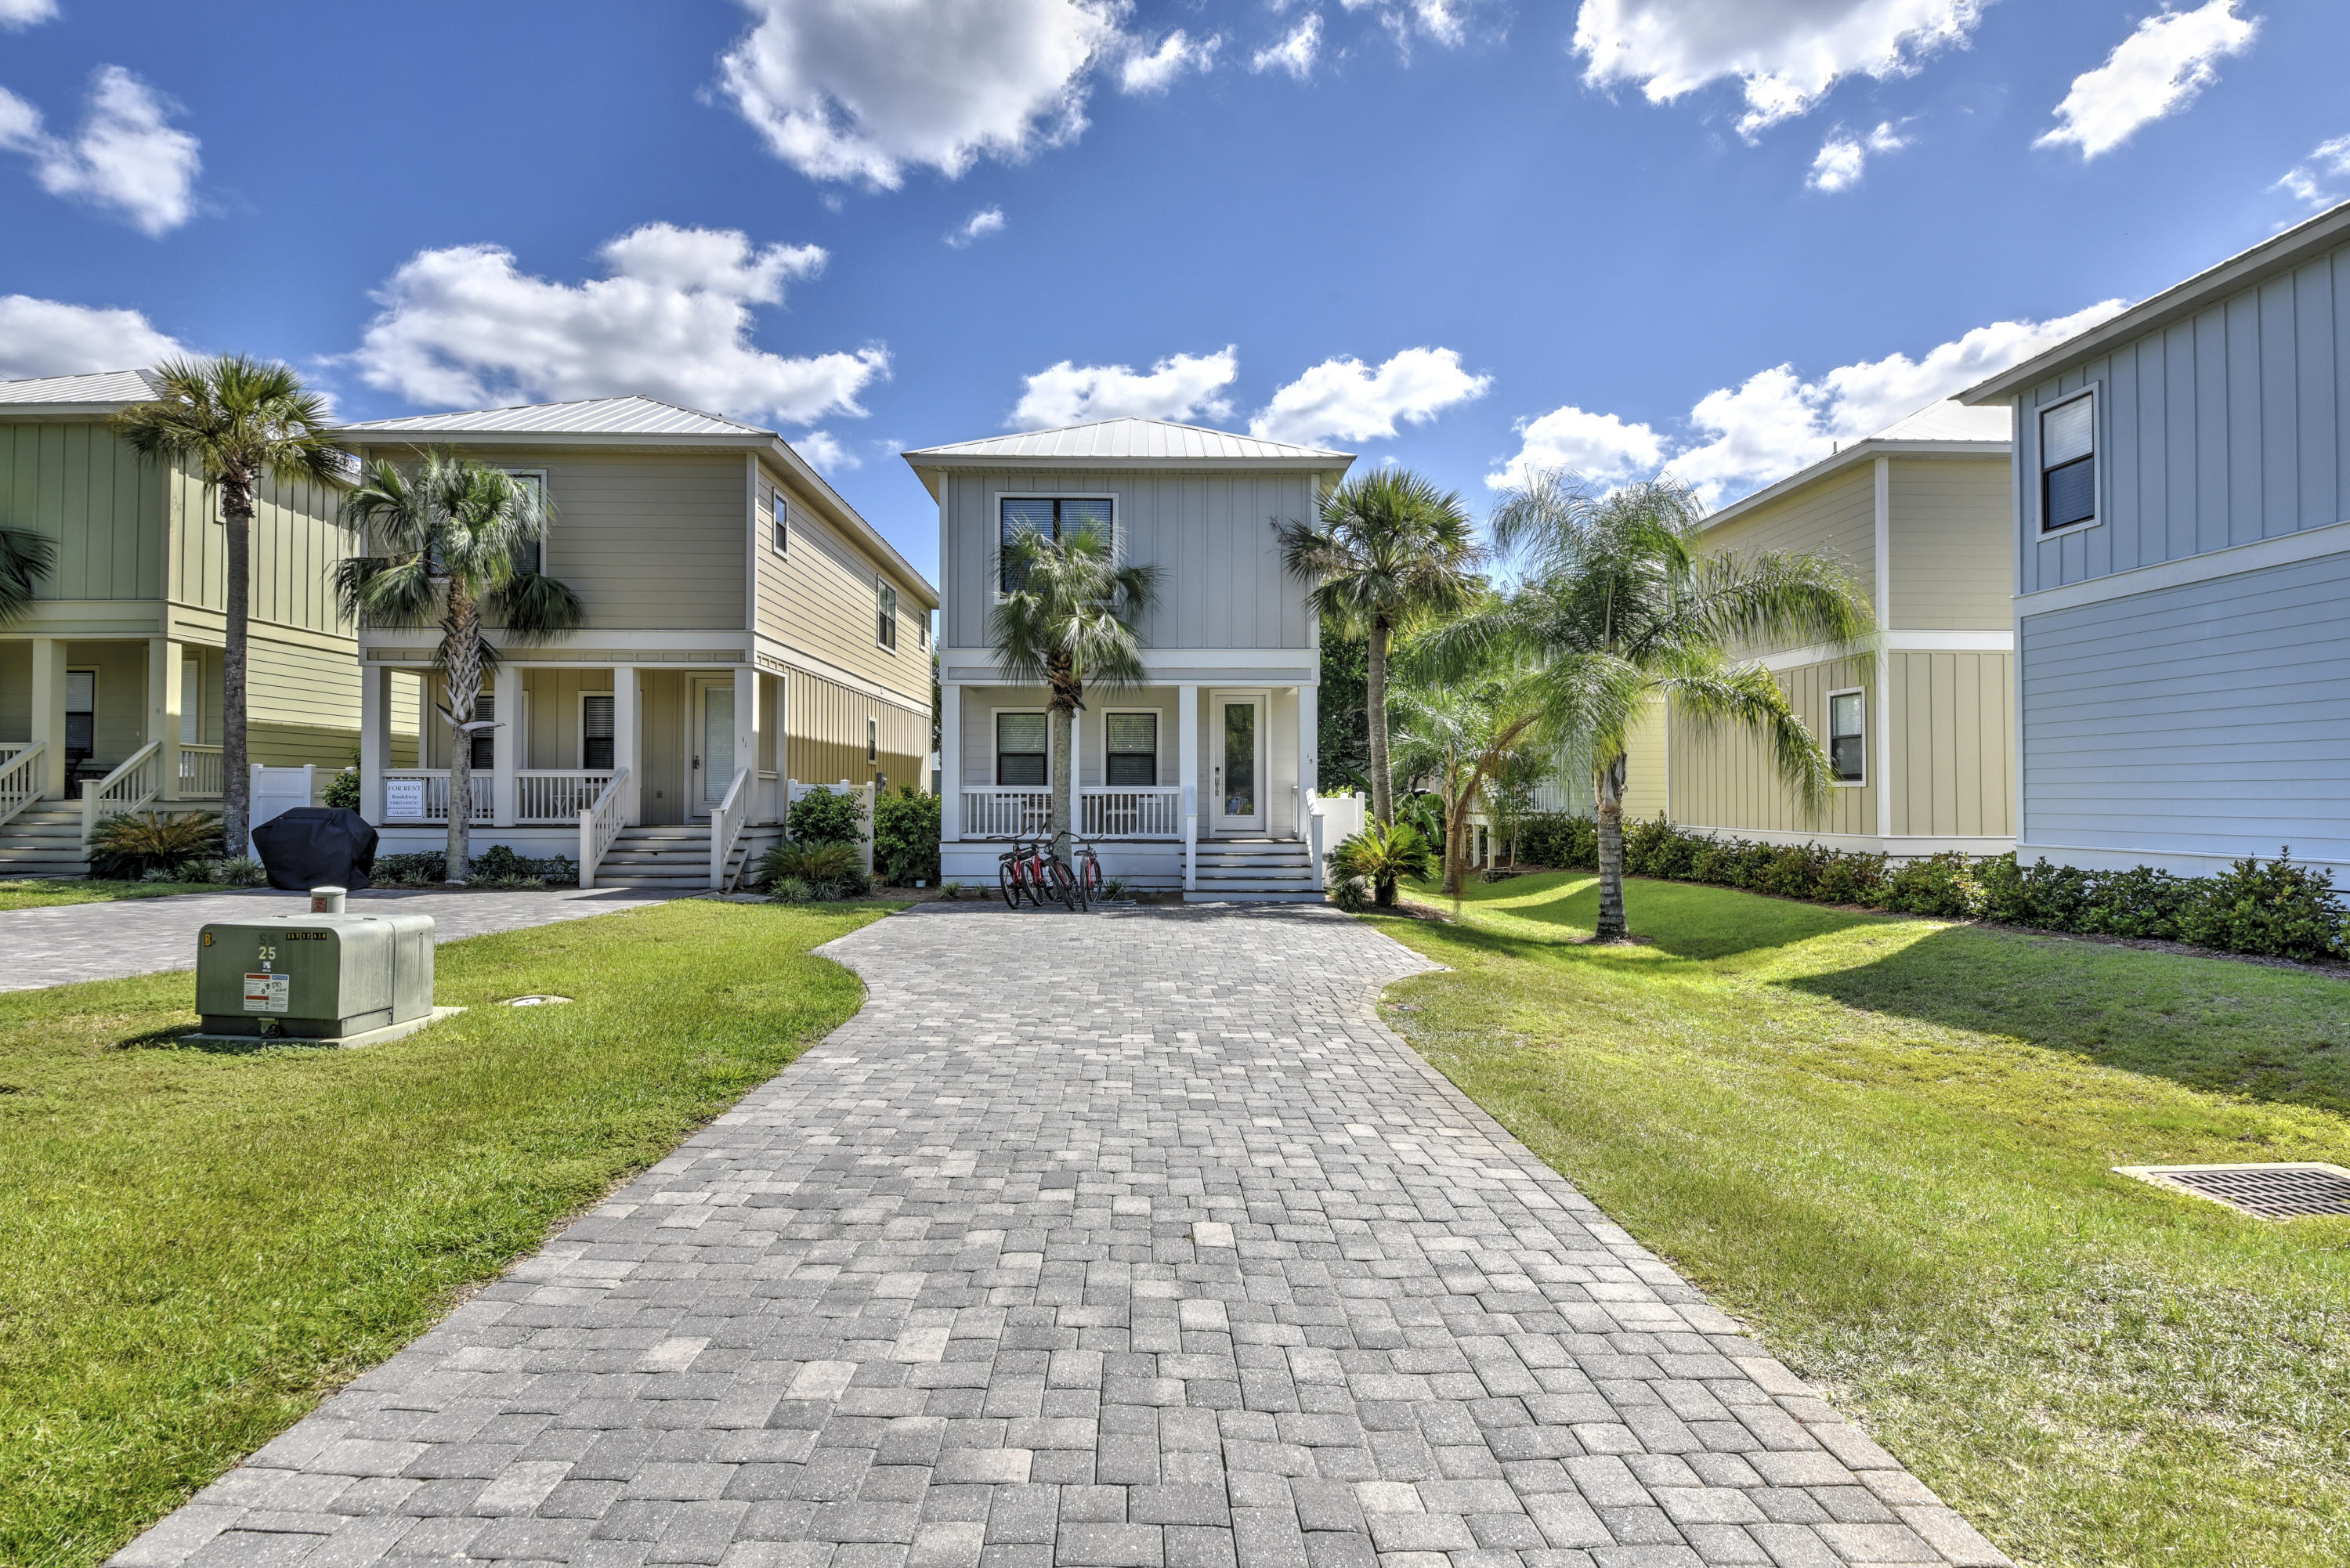 Photo of home for sale at 15 Asher, Santa Rosa Beach FL